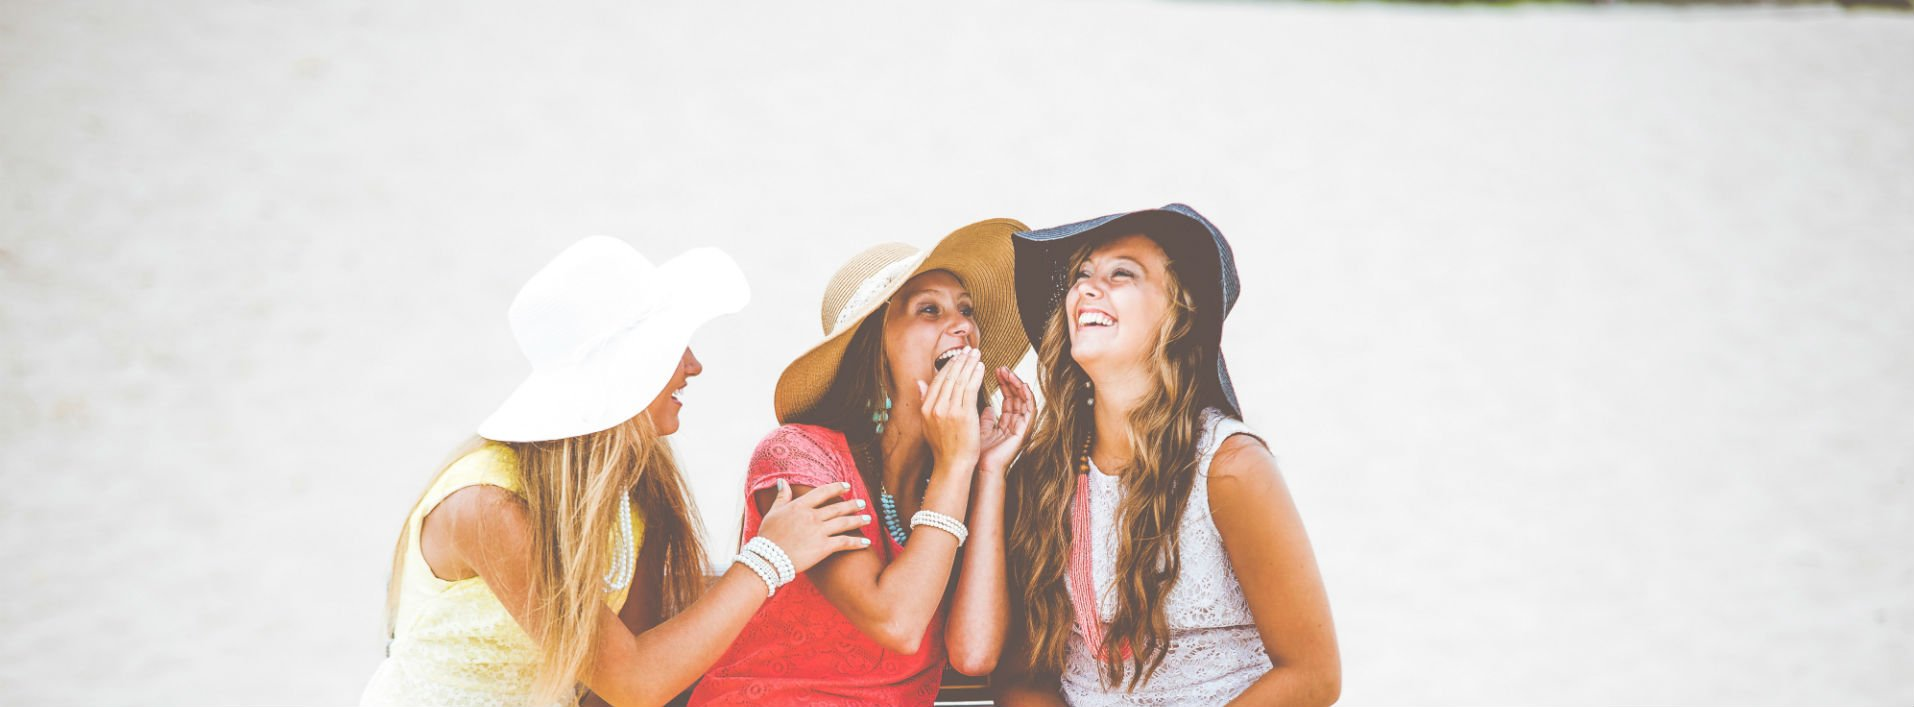 Three girls in white wide-brimmed beach hats laughing at innuendos in English.